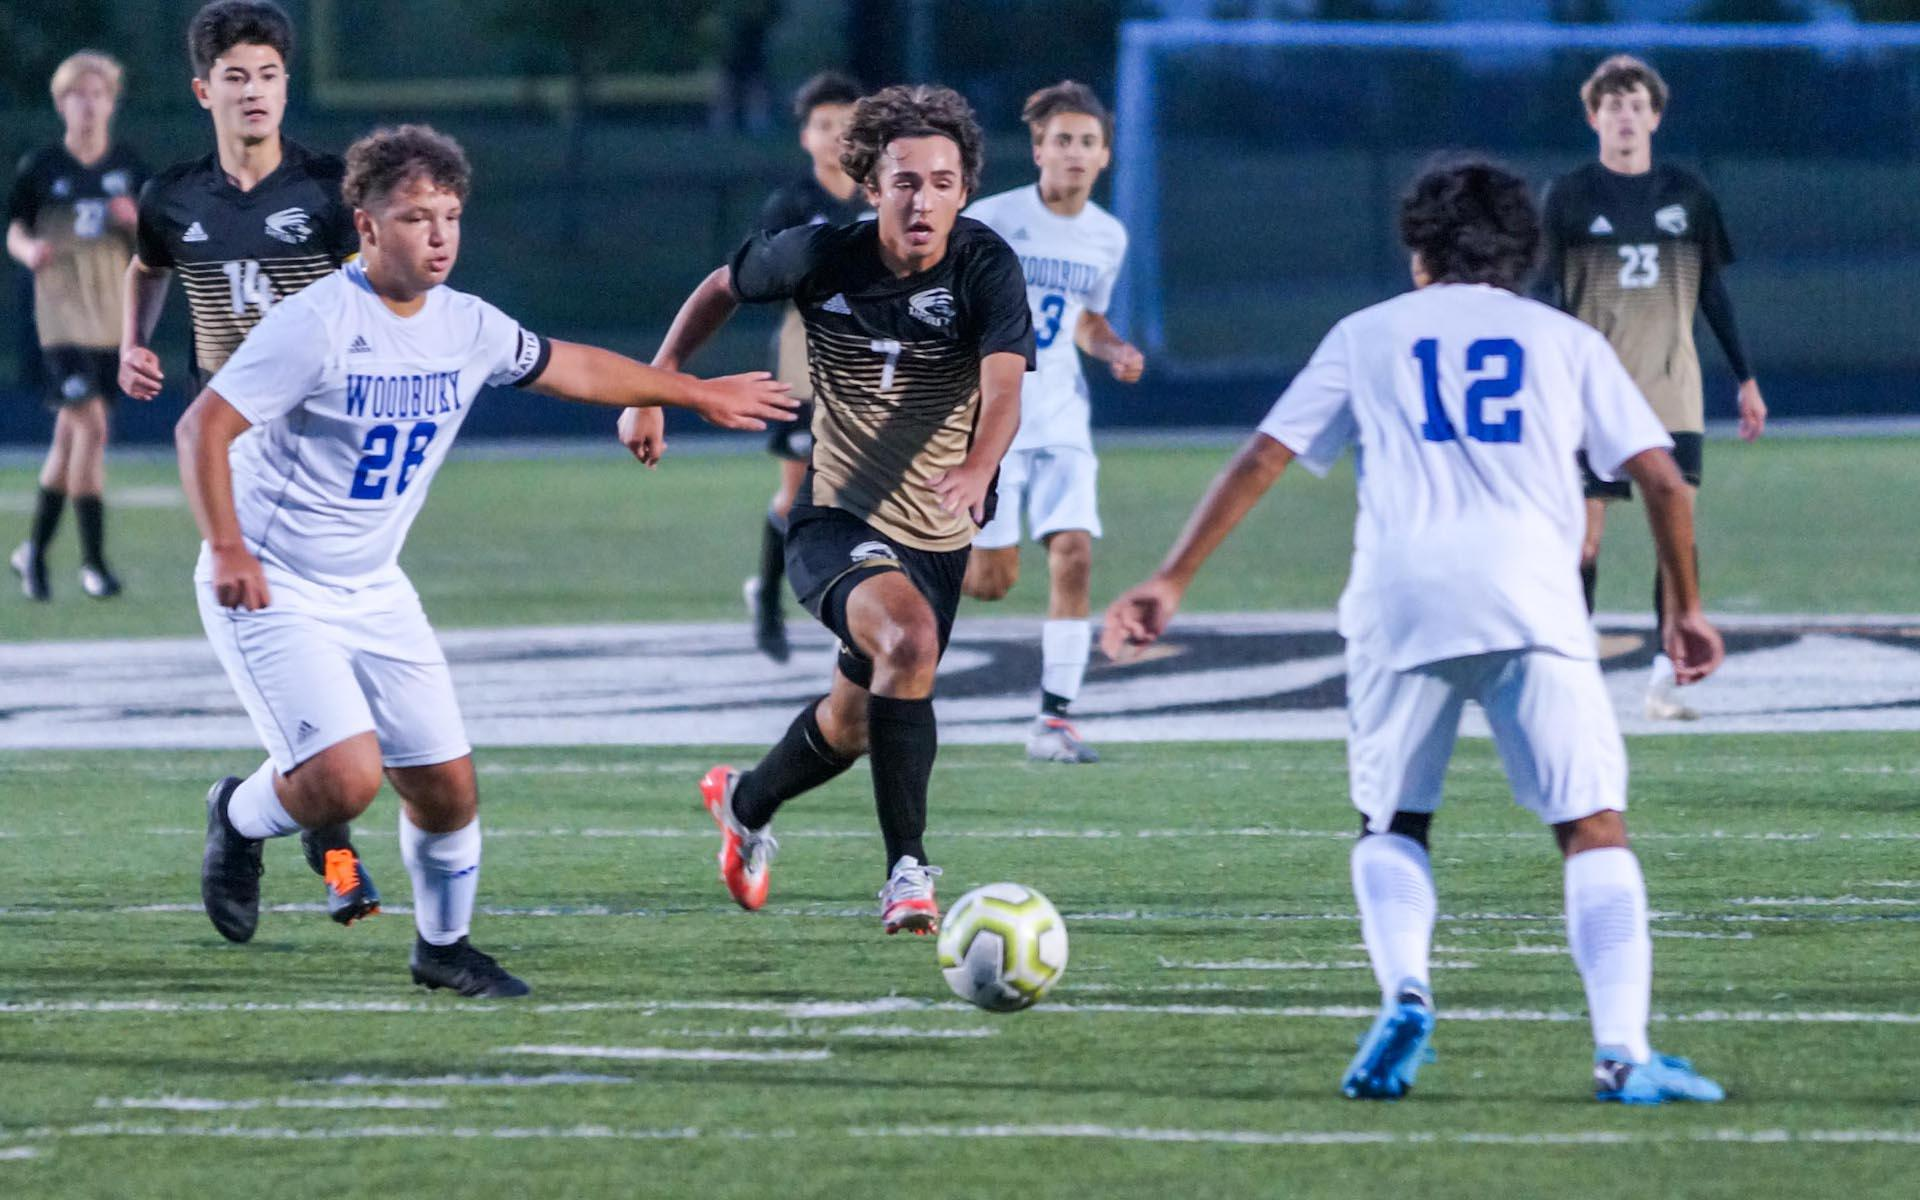 After suffering its first defeat of the season to Woodbury last week, East Ridge faces another tough east metro opponent in Stillwater on Tuesday. Photo by Korey McDermott, SportsEngine